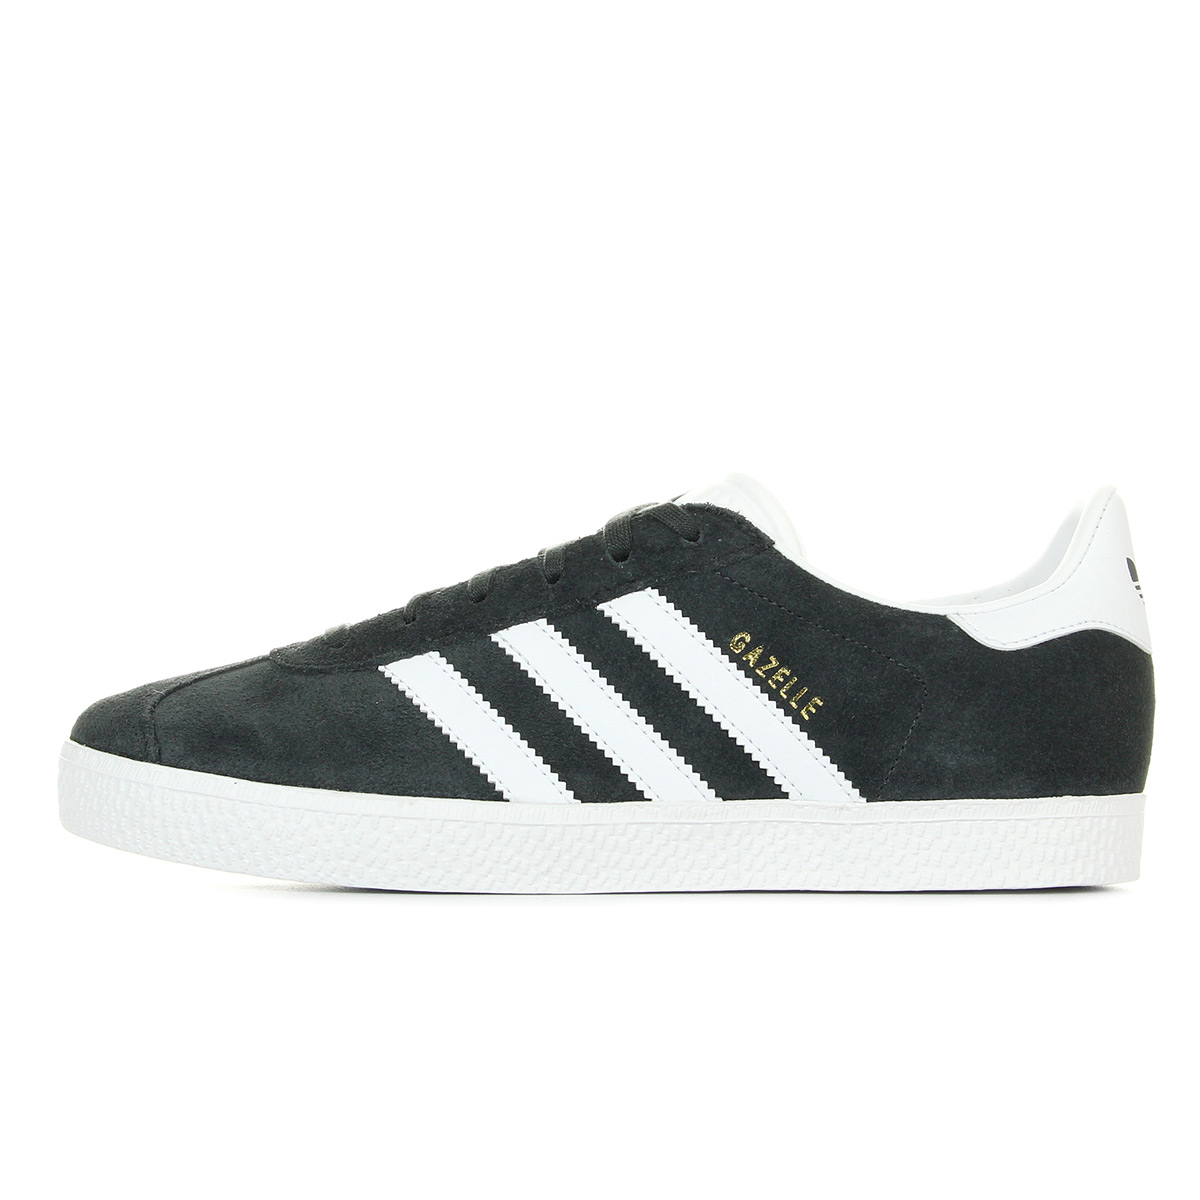 Grande Adidas Plus Vente De Gazelle Baskets Bb2503 Femme Mode 1Yr1Fqw